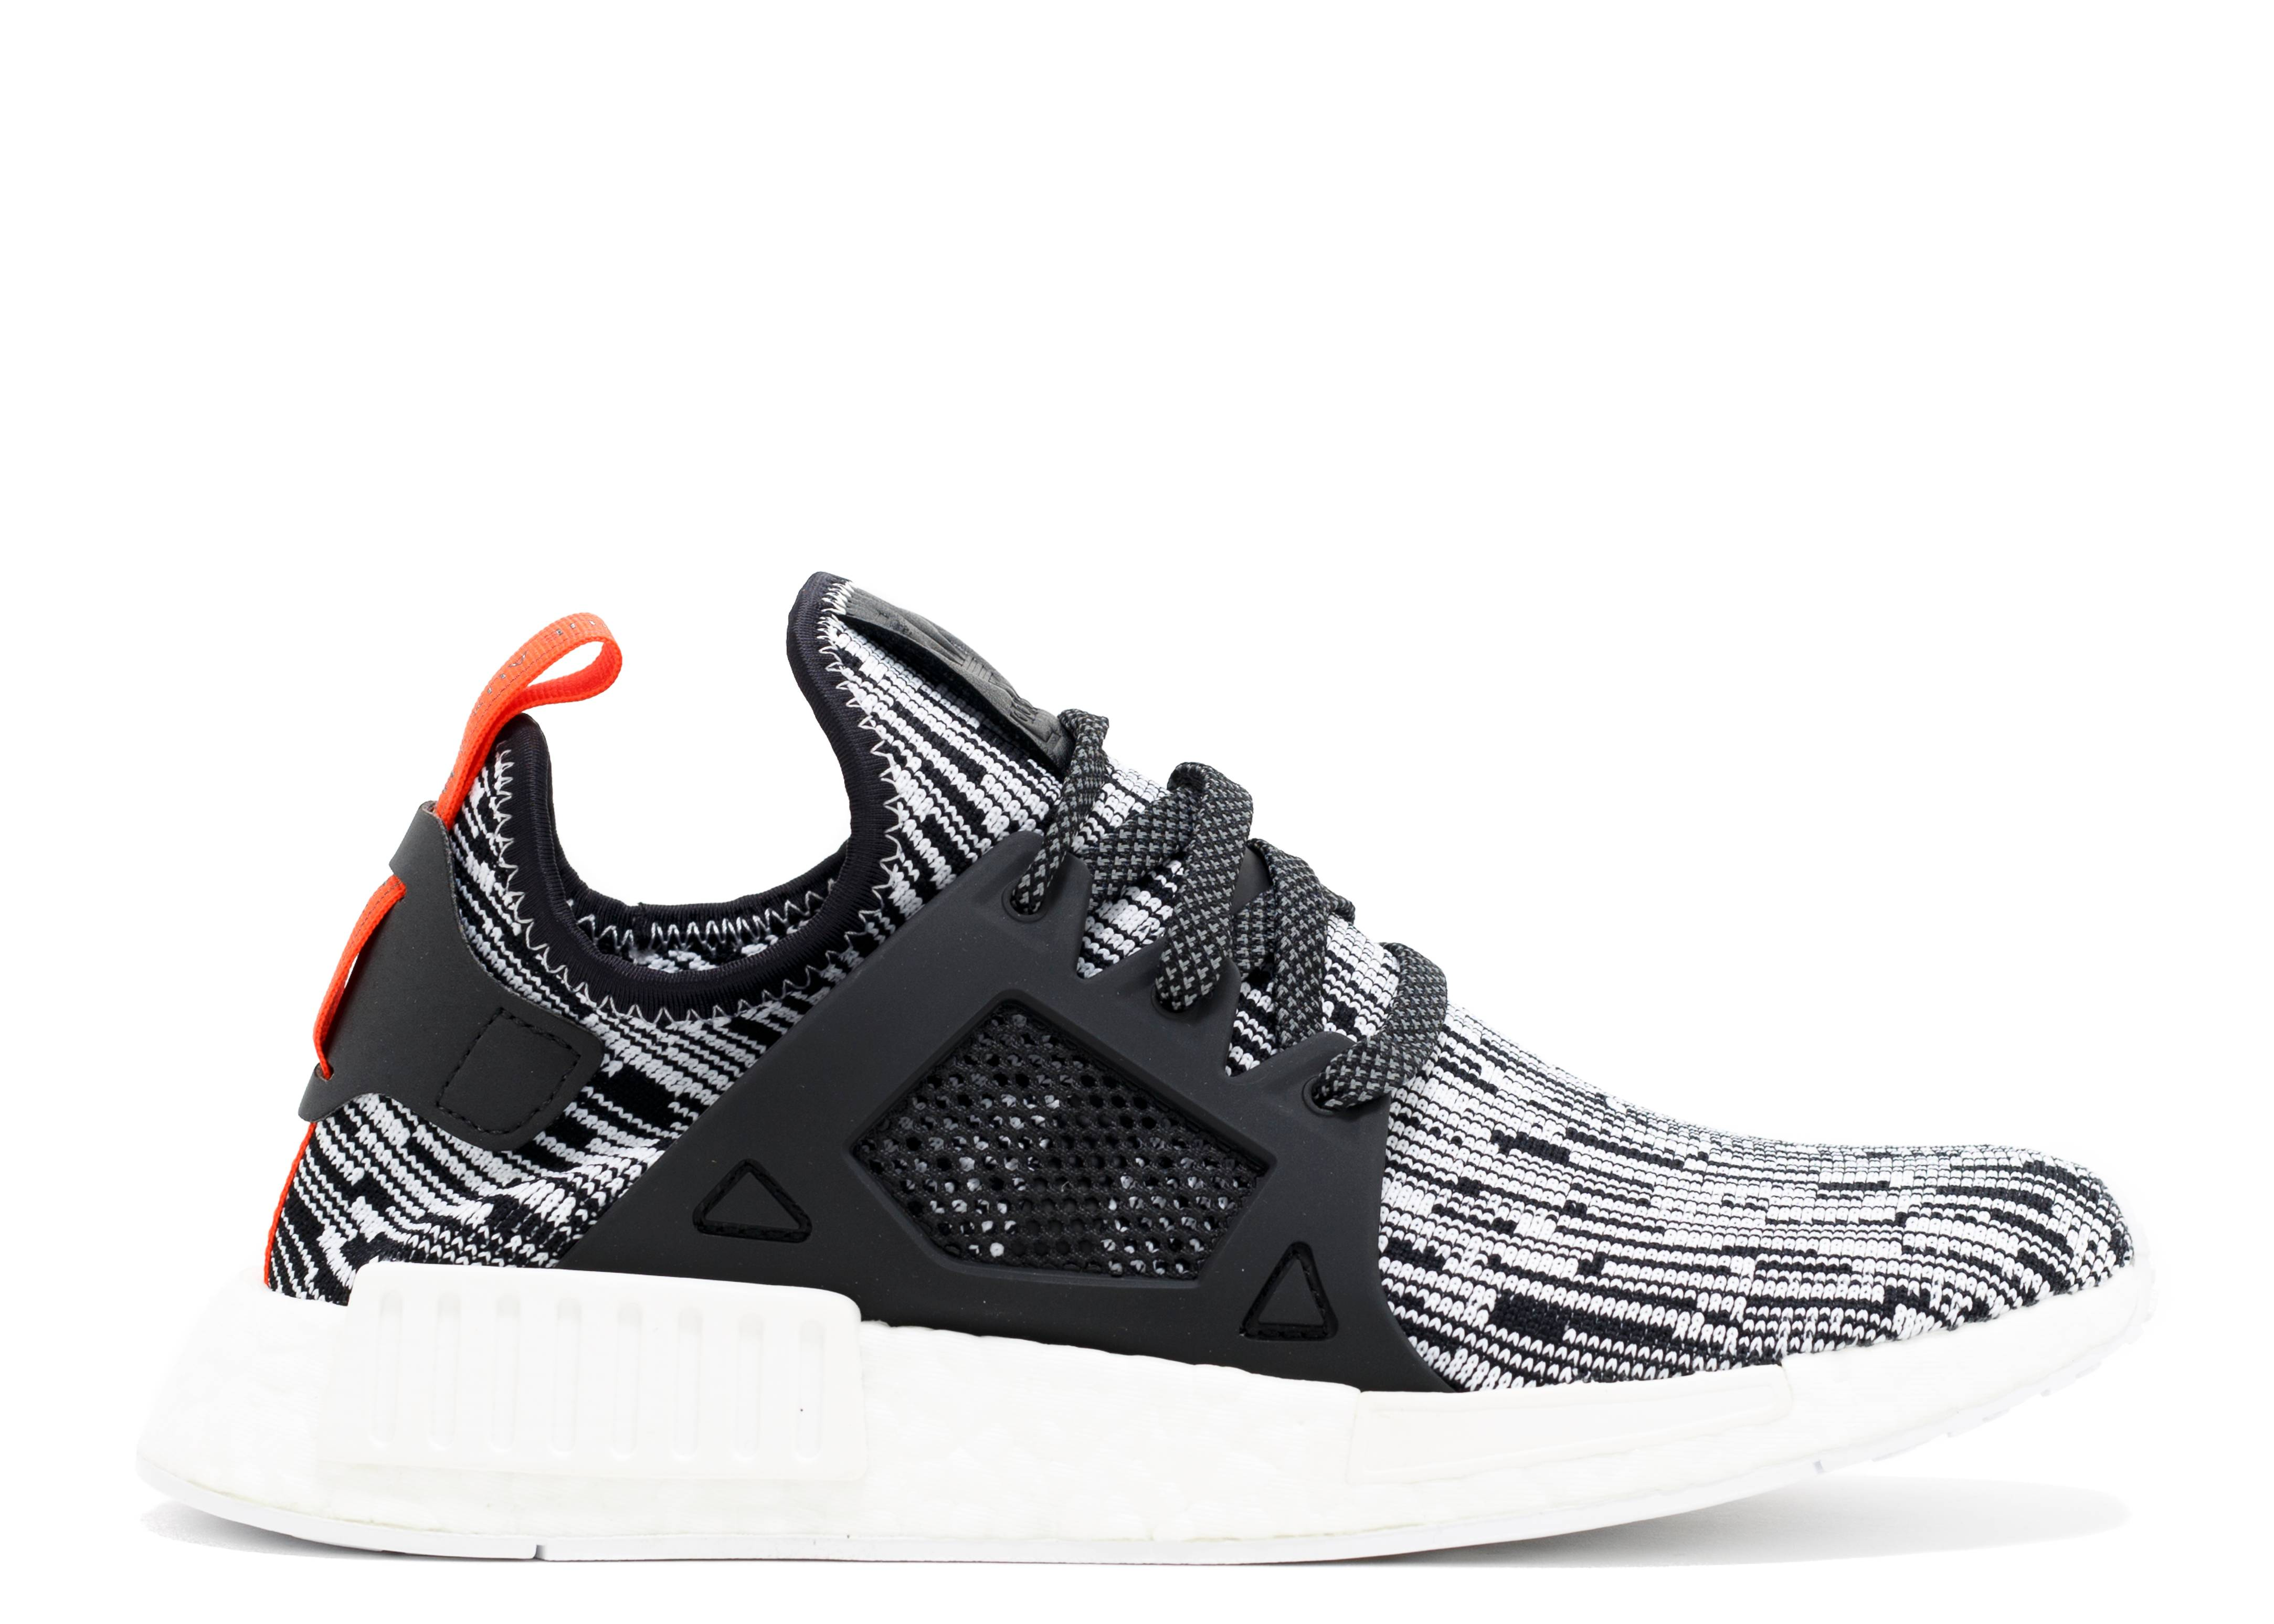 adidas nmd xr1 red black